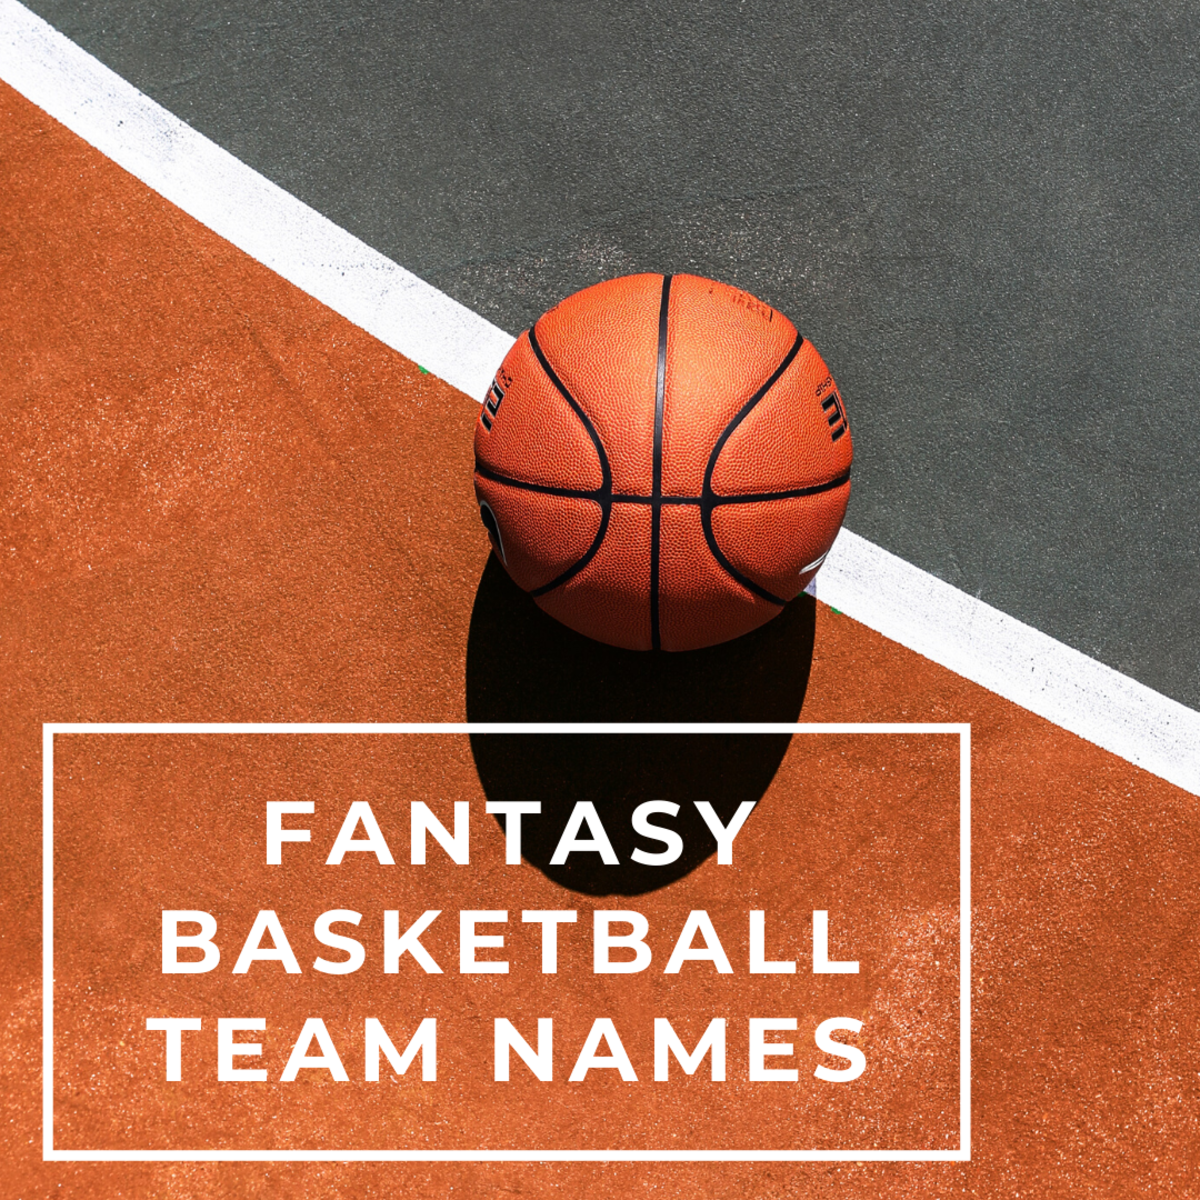 Read on for some witty fantasy basketball team names.